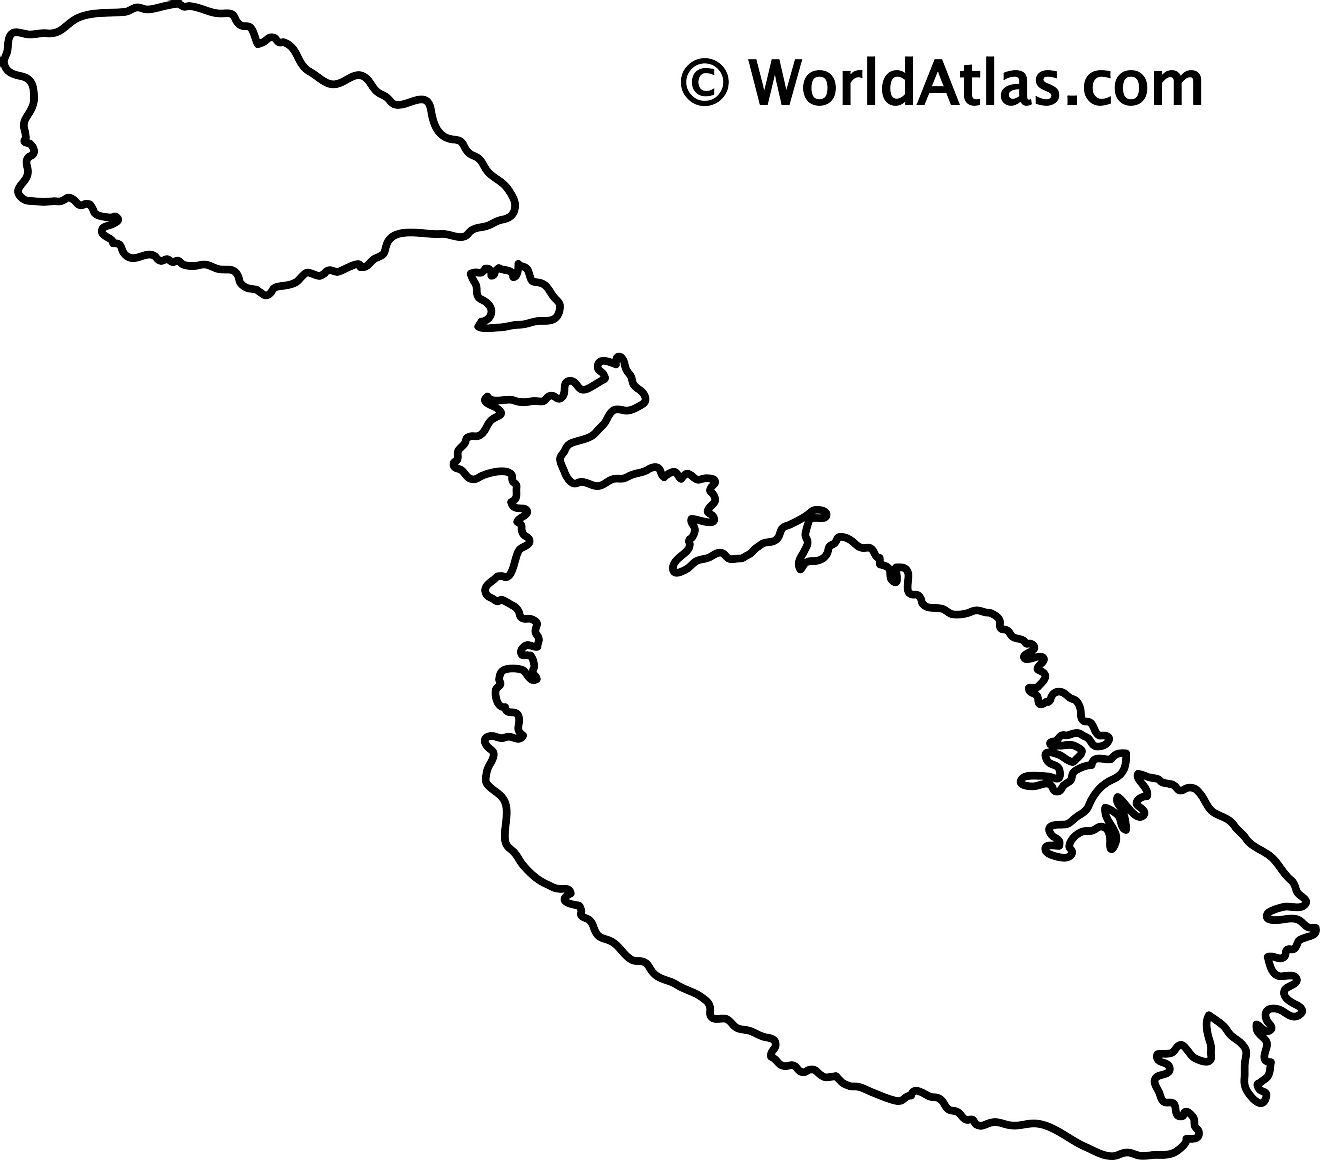 Blank Outline Map of Malta